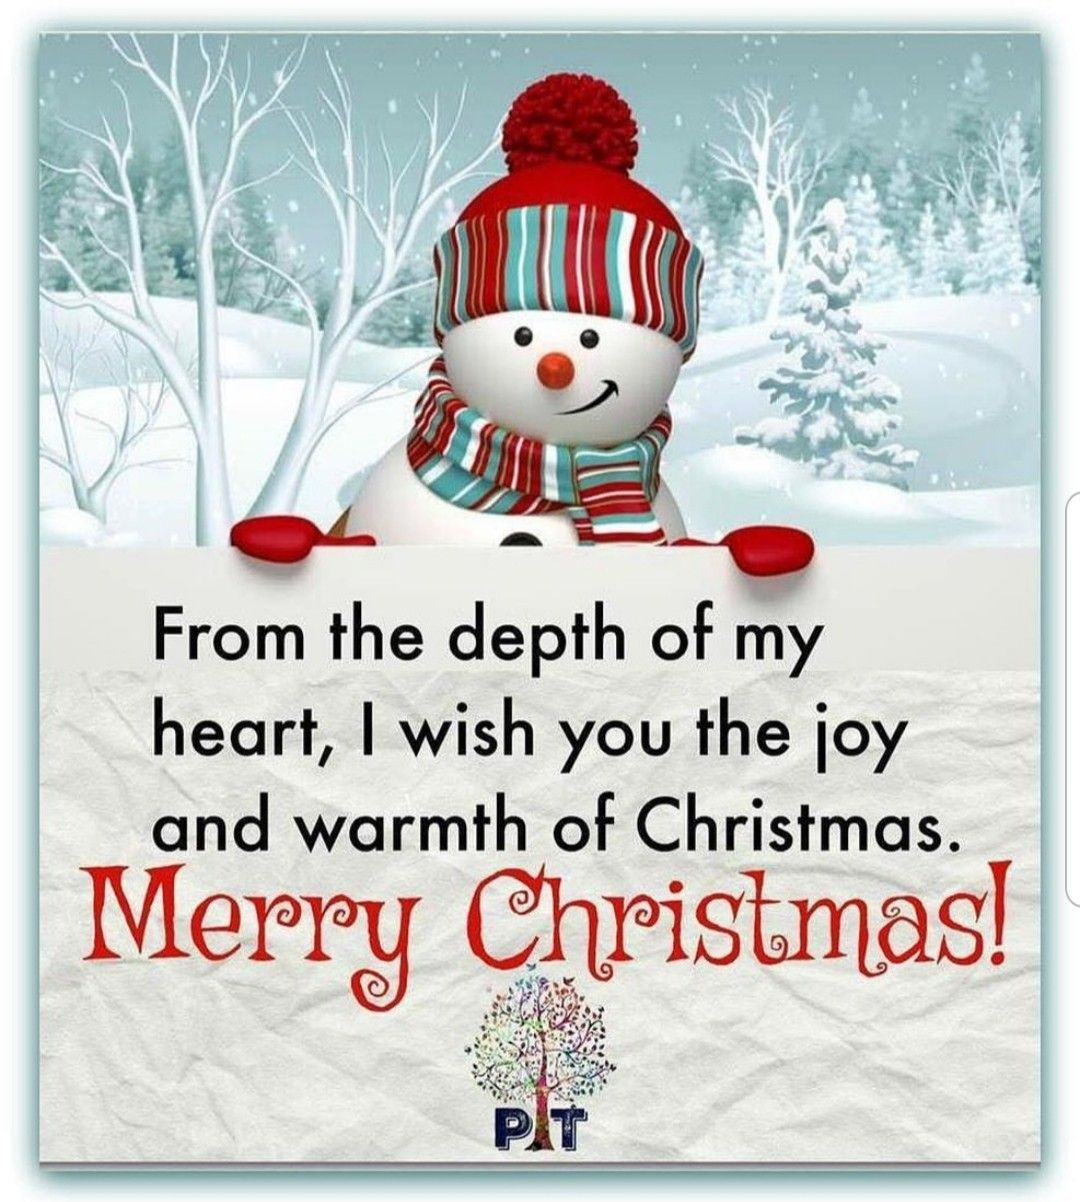 Pin by Kristy Harvey on CHRISTmas (With images